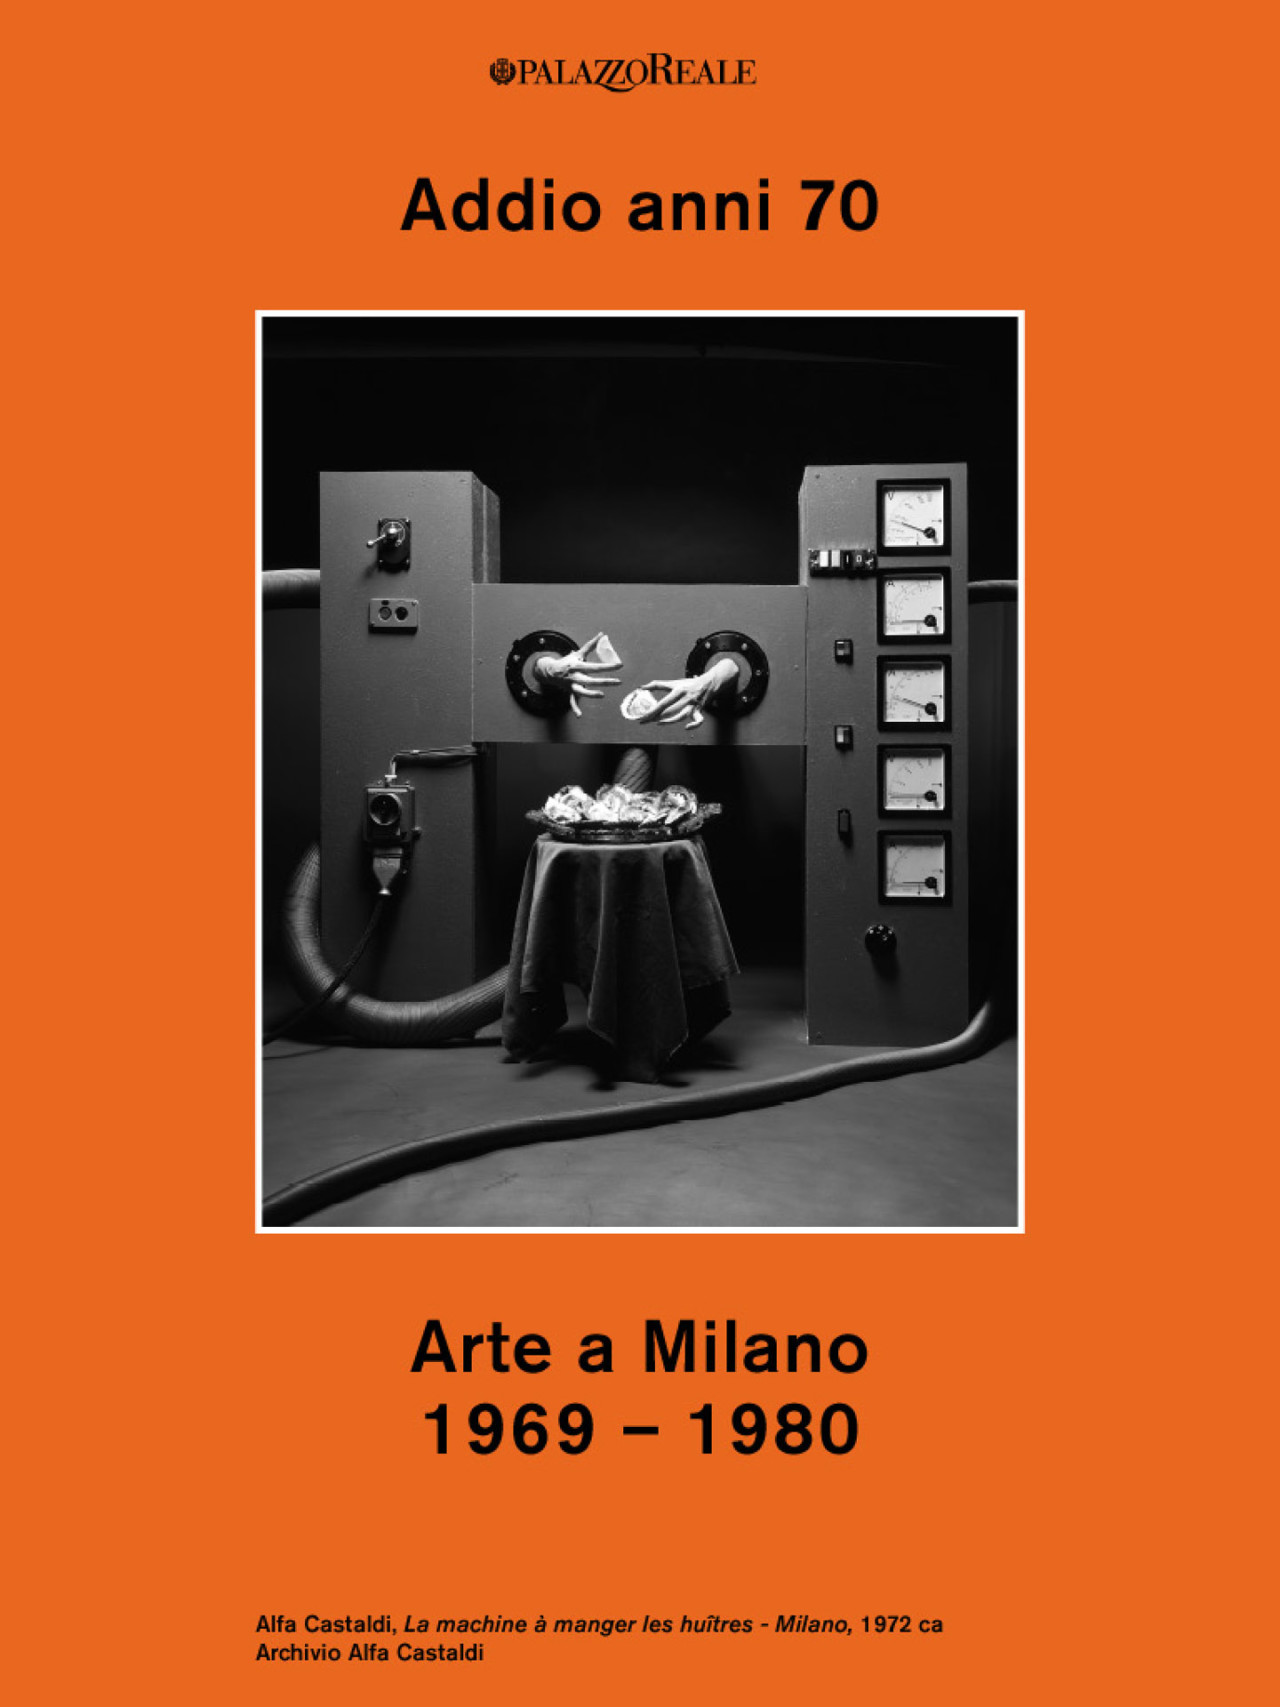 MOUSSE AGENCY ADDIO ANNI 70 AT PALAZZO REALE — 2012